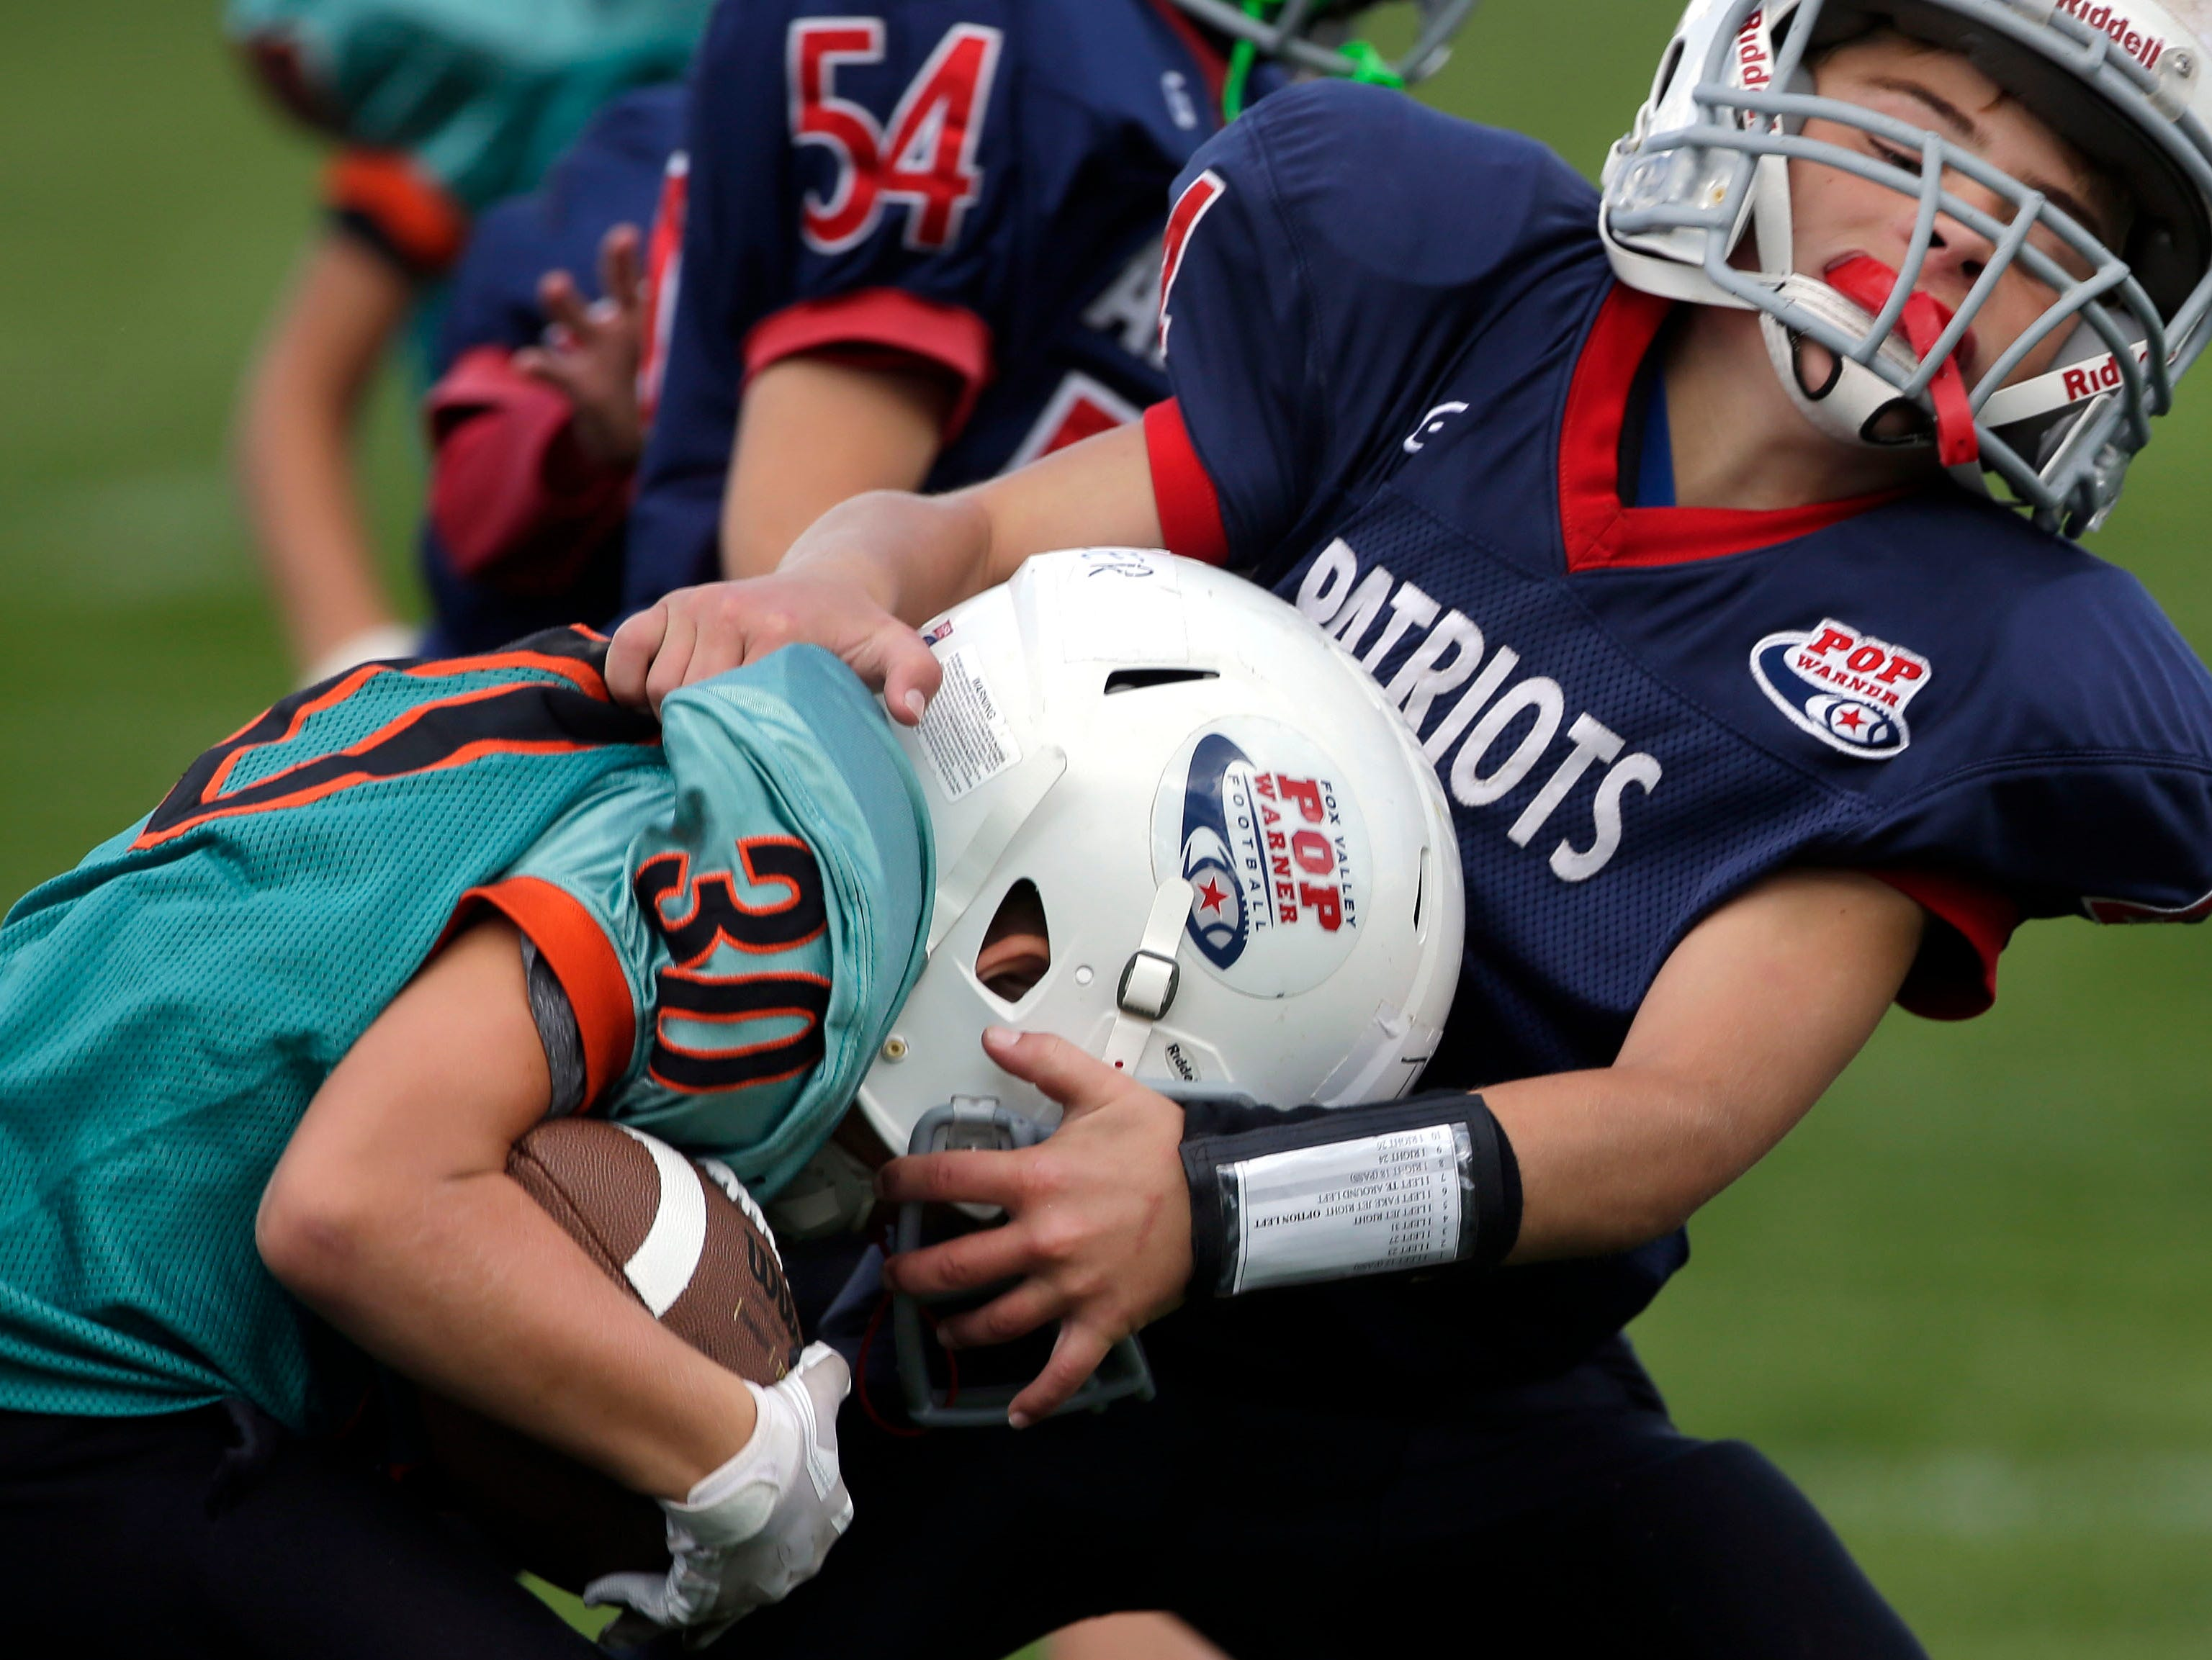 Tyler Clark of the Rockets is tackled by AJ Pheifer of the Patriots as Fox Valley Pop Warner Football opens the season Saturday, September 8, 2018, at Plamann Park in Grand Chute, Wis.